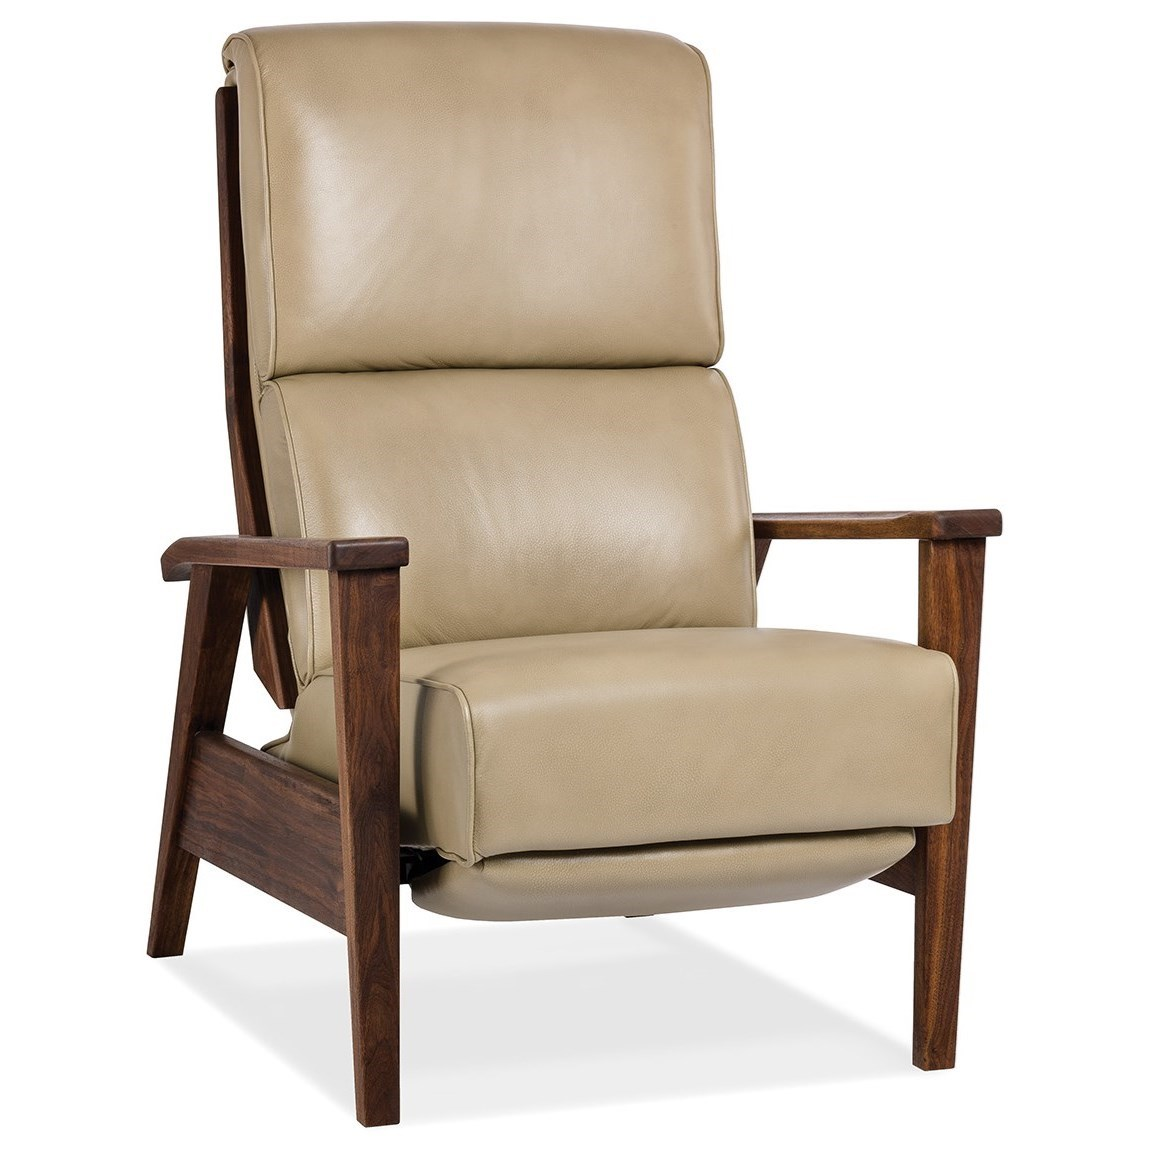 Katie Lounger with Walnut Wood